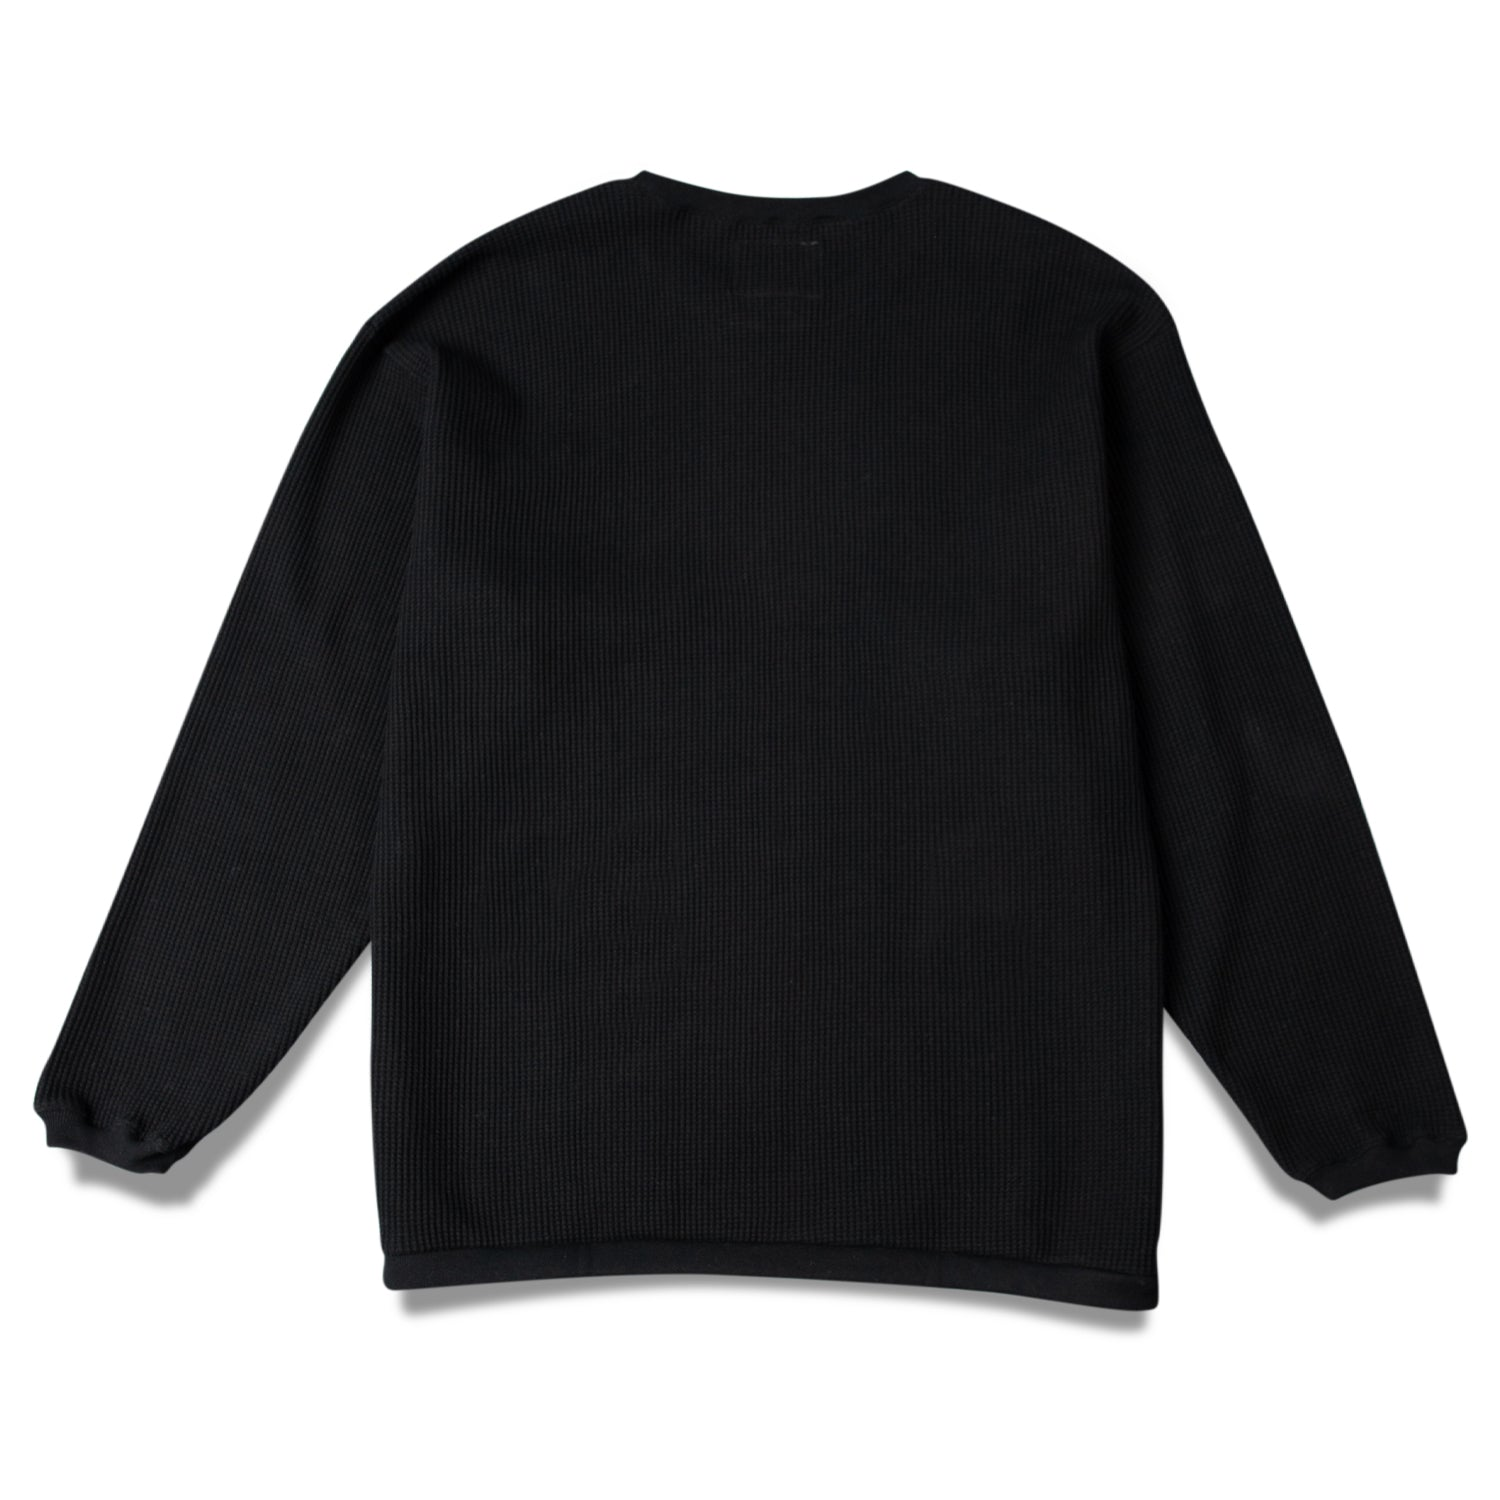 THERMAL SHIRT / KNIT